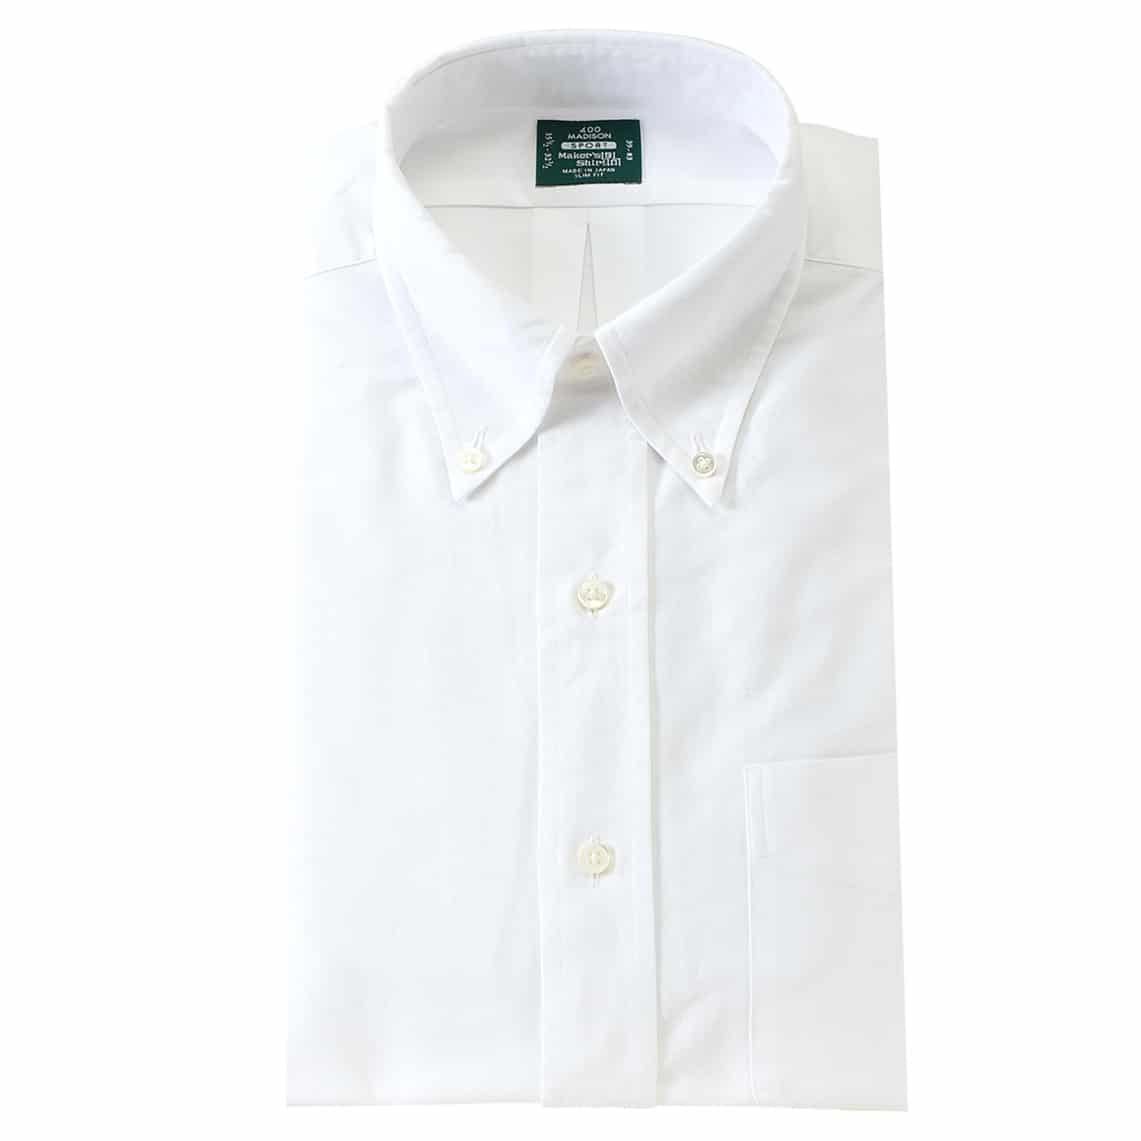 Kamakura Shirts - SLIM FIT - SPORT Button Down Oxford